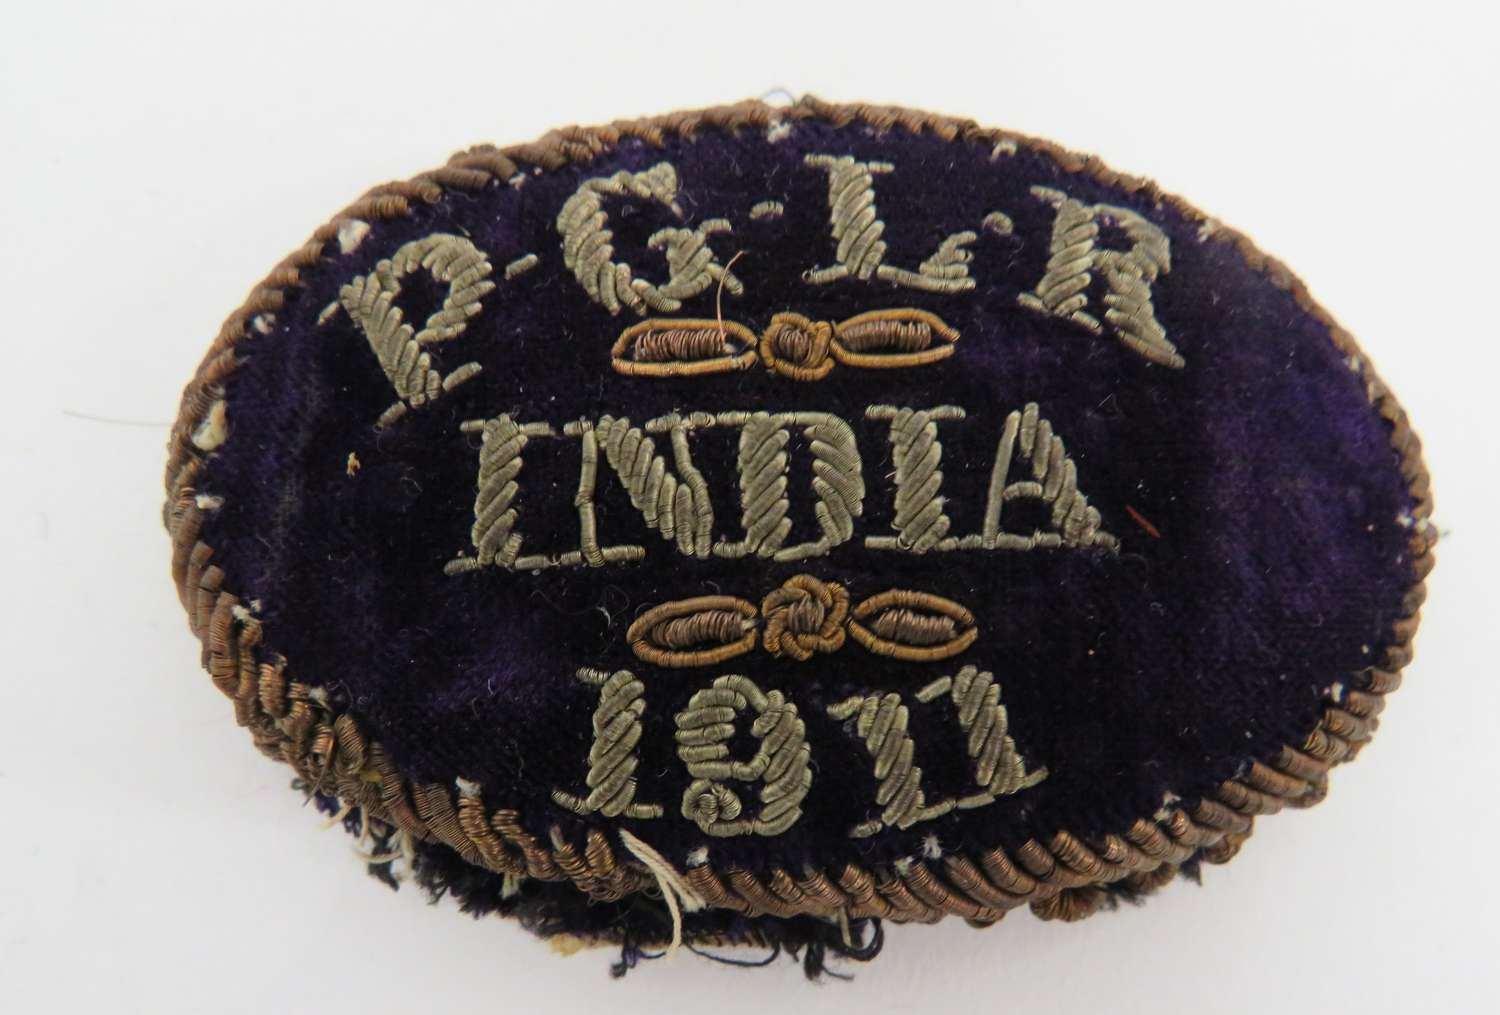 1911 India Bullion Badge